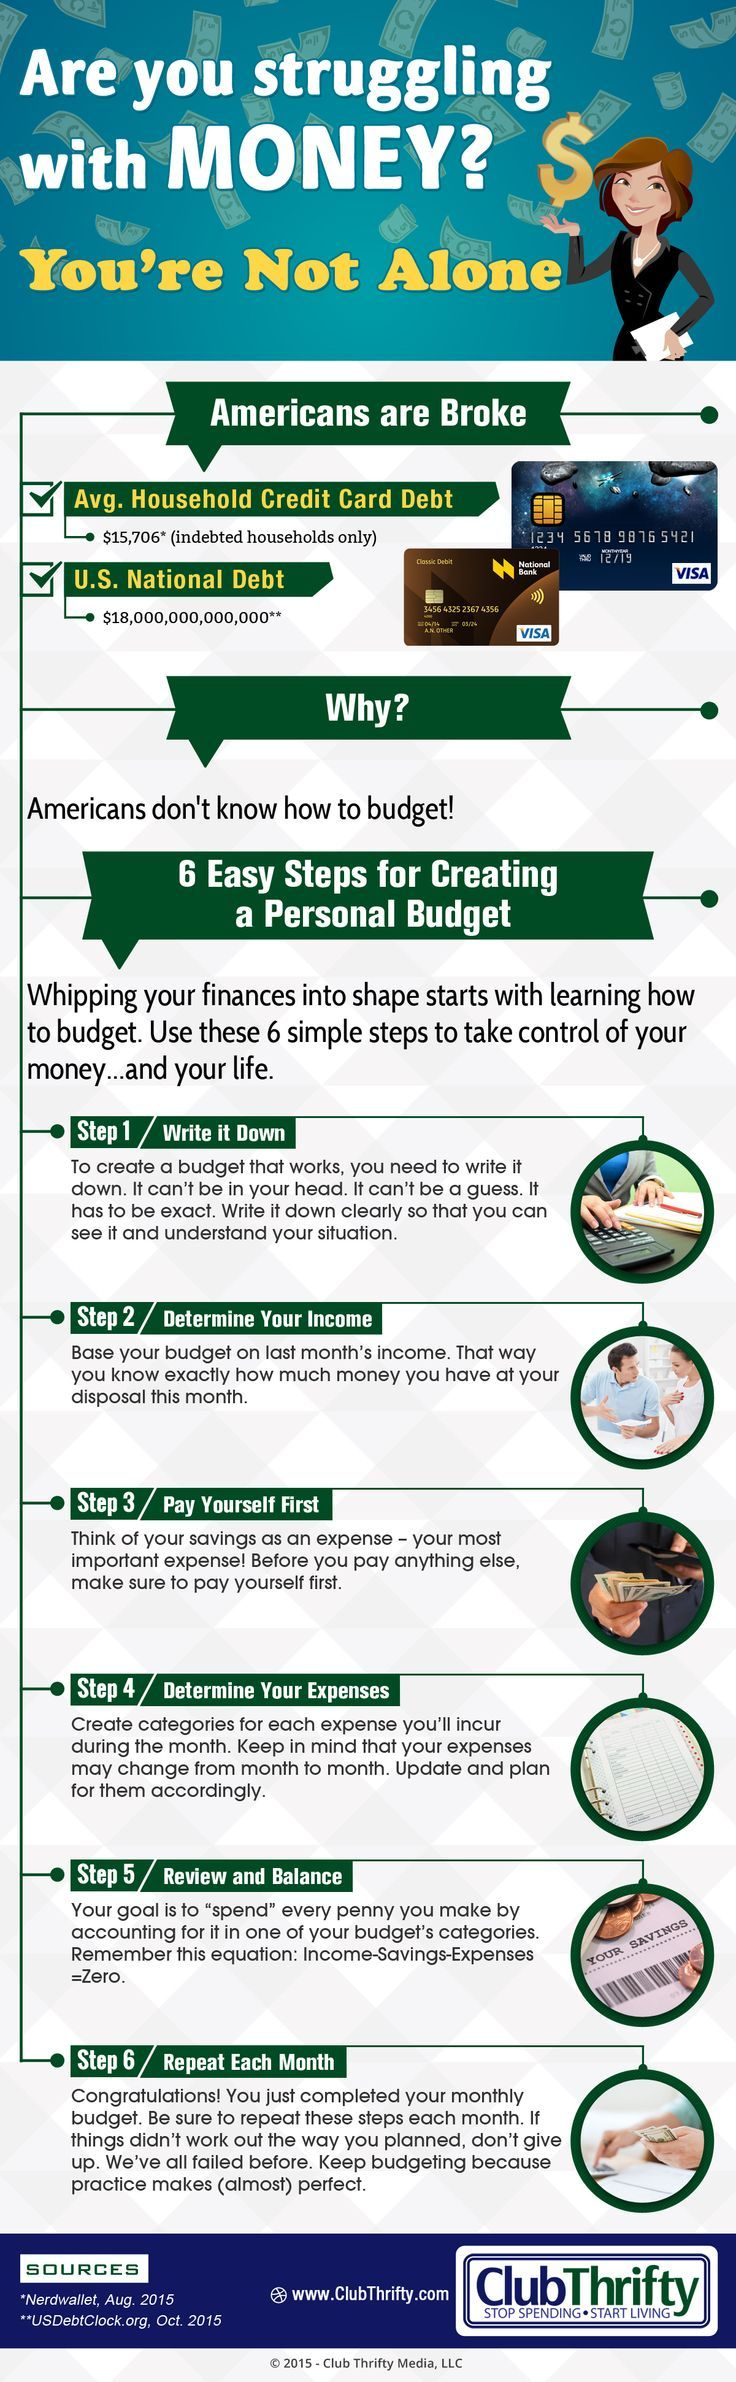 Accounting. Enjoy Crown Ministries Budget Worksheet Images. Myltio ...